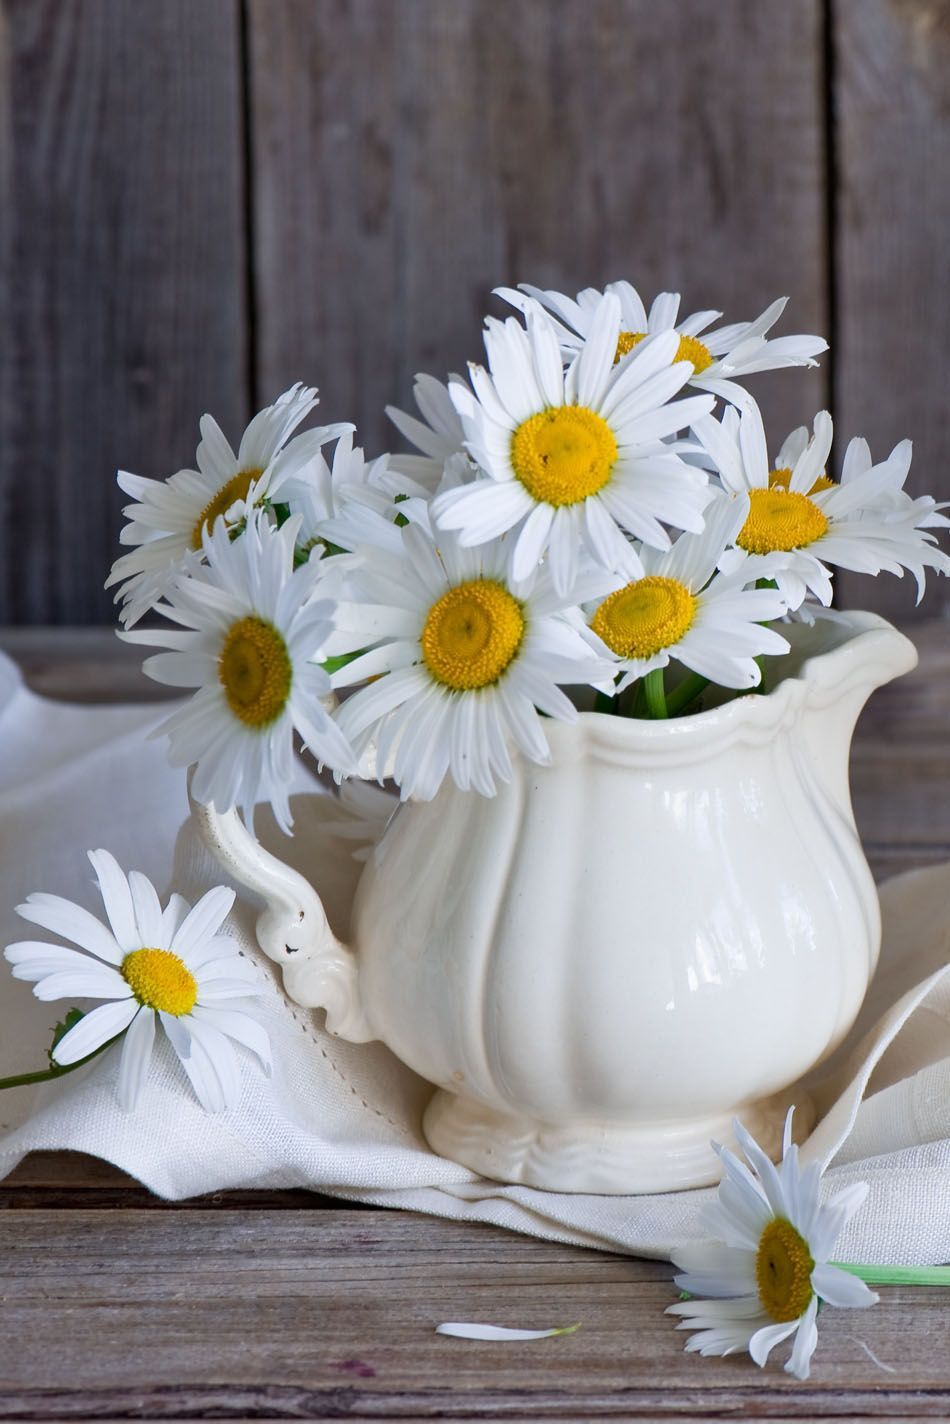 Pin by jessica myers on daisy fave flower | Pinterest | Flowers ...